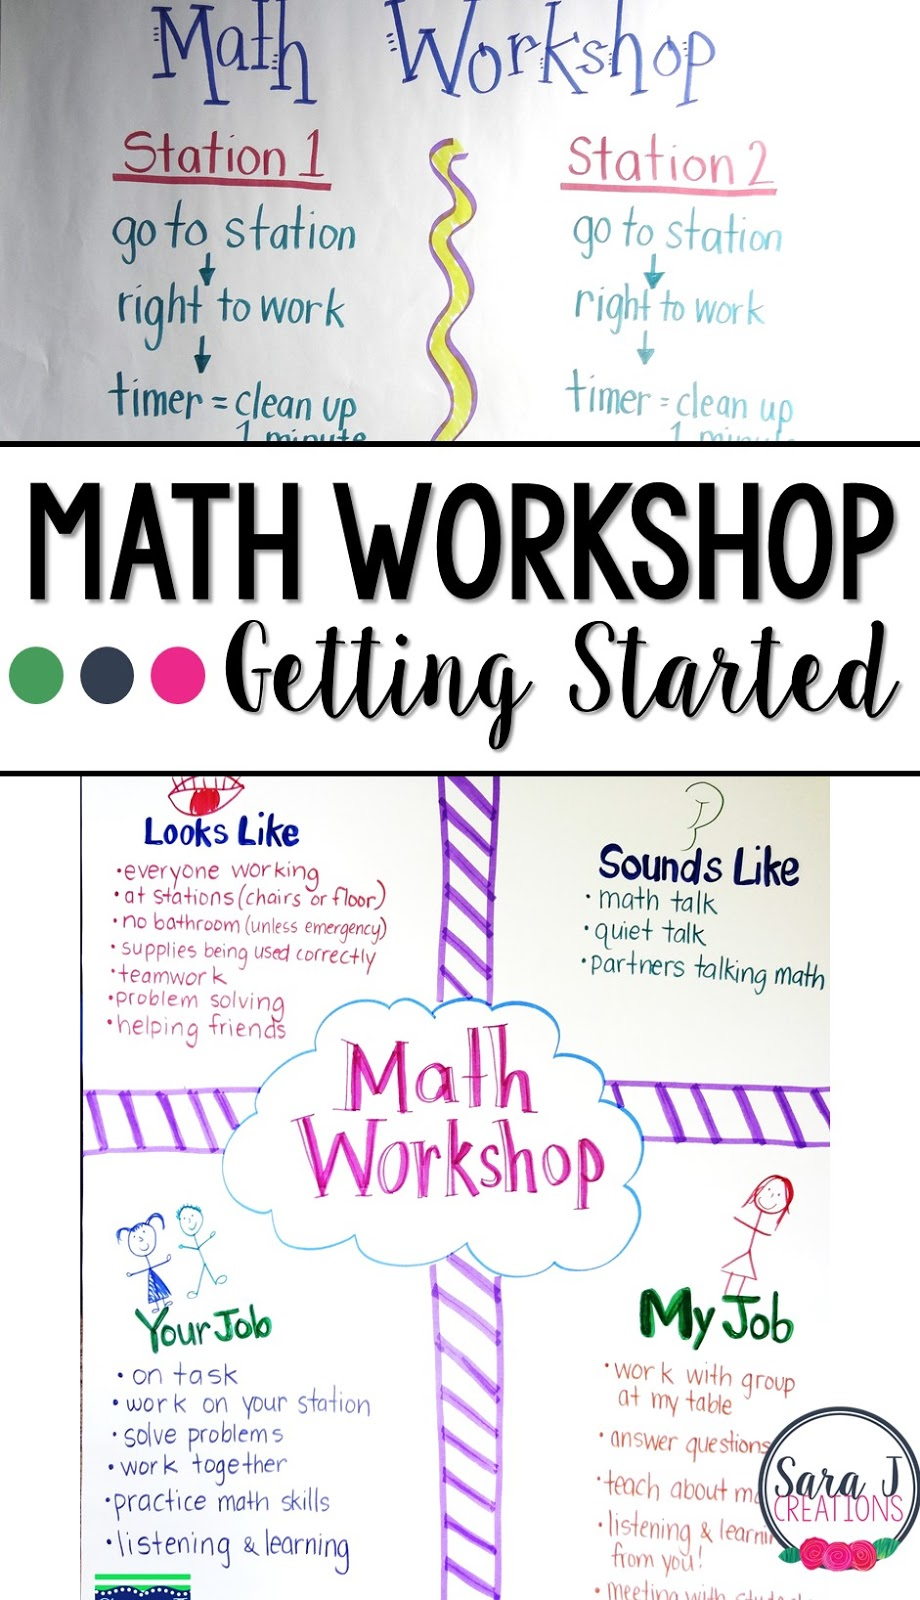 Getting started with math workshop in the elementary classroom